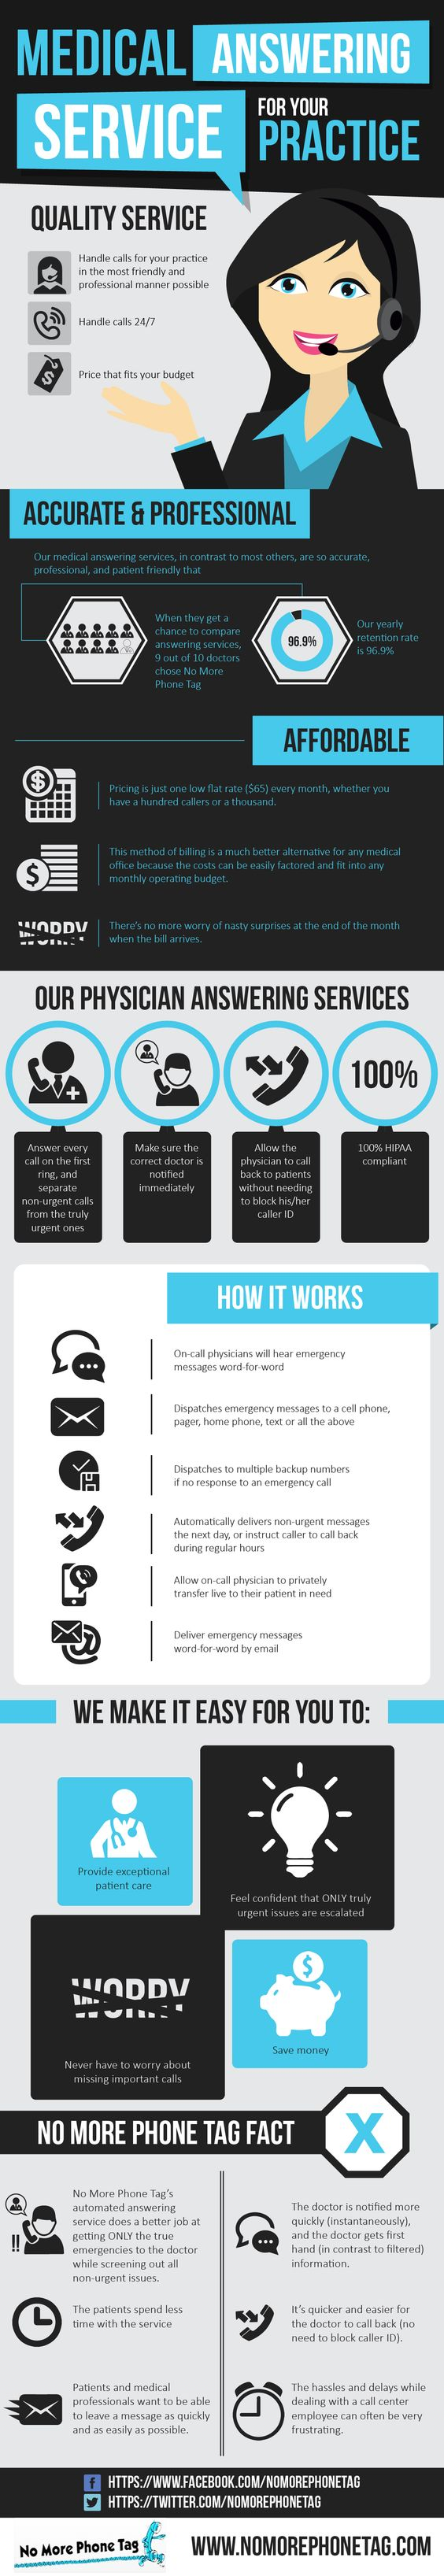 It is very important to select a quality, affordable & professional answering service to handle calls for your practice 24/7 in a professional manner. Take a look at infographic to know why 9 out of 10 doctors choose No More Phone Tag For their service.